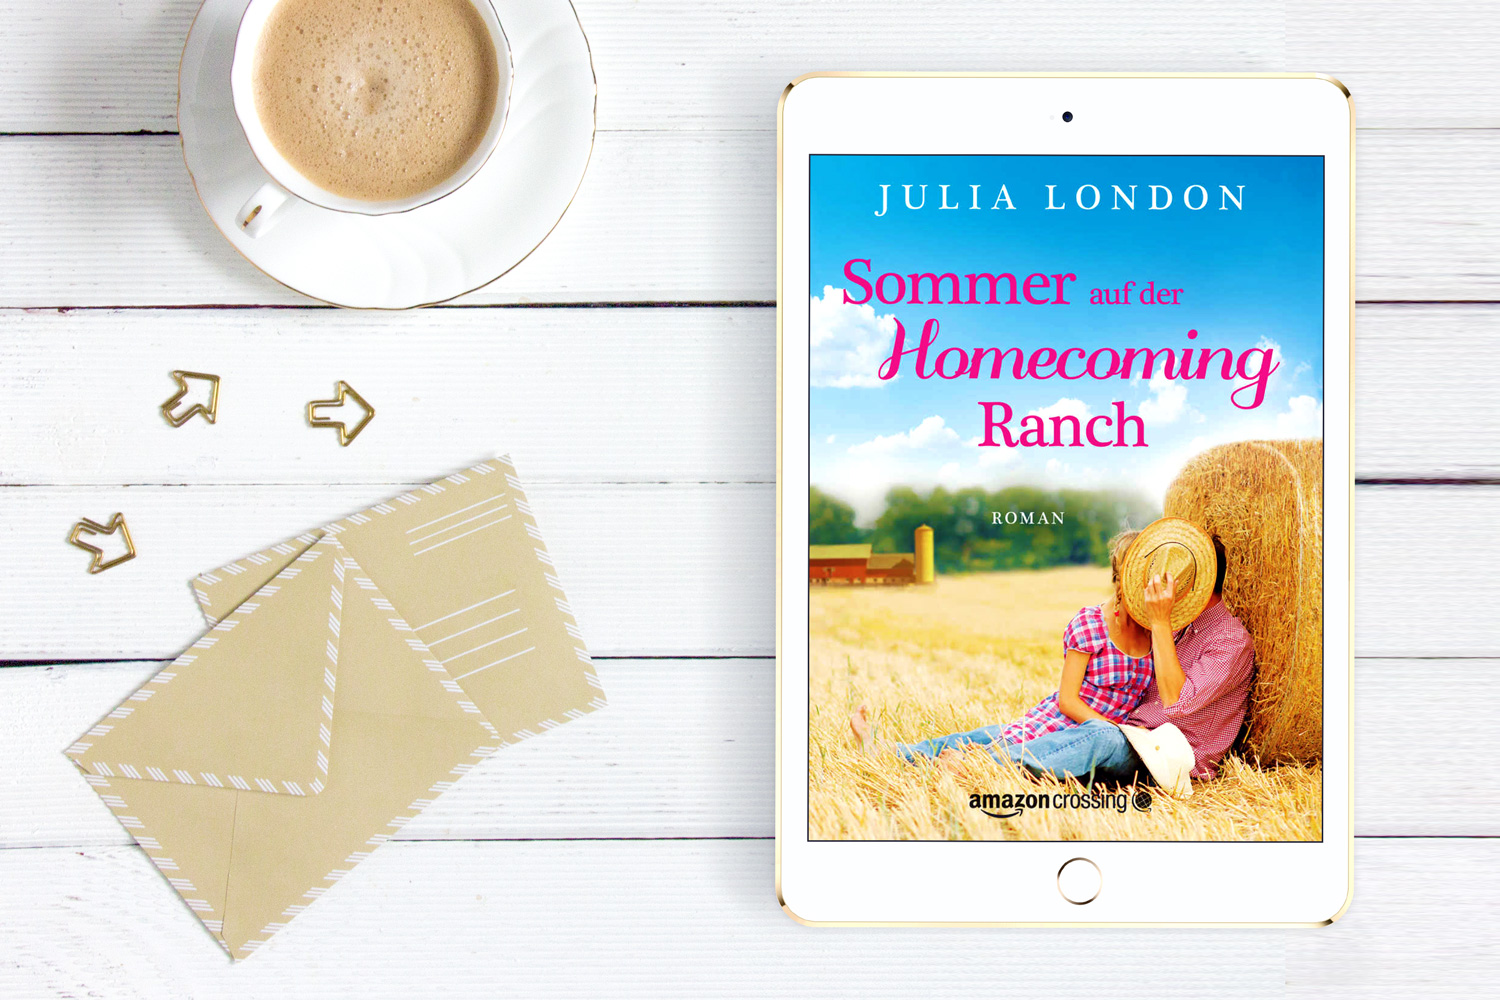 Sommer auf der Homecoming Ranch von Julia London